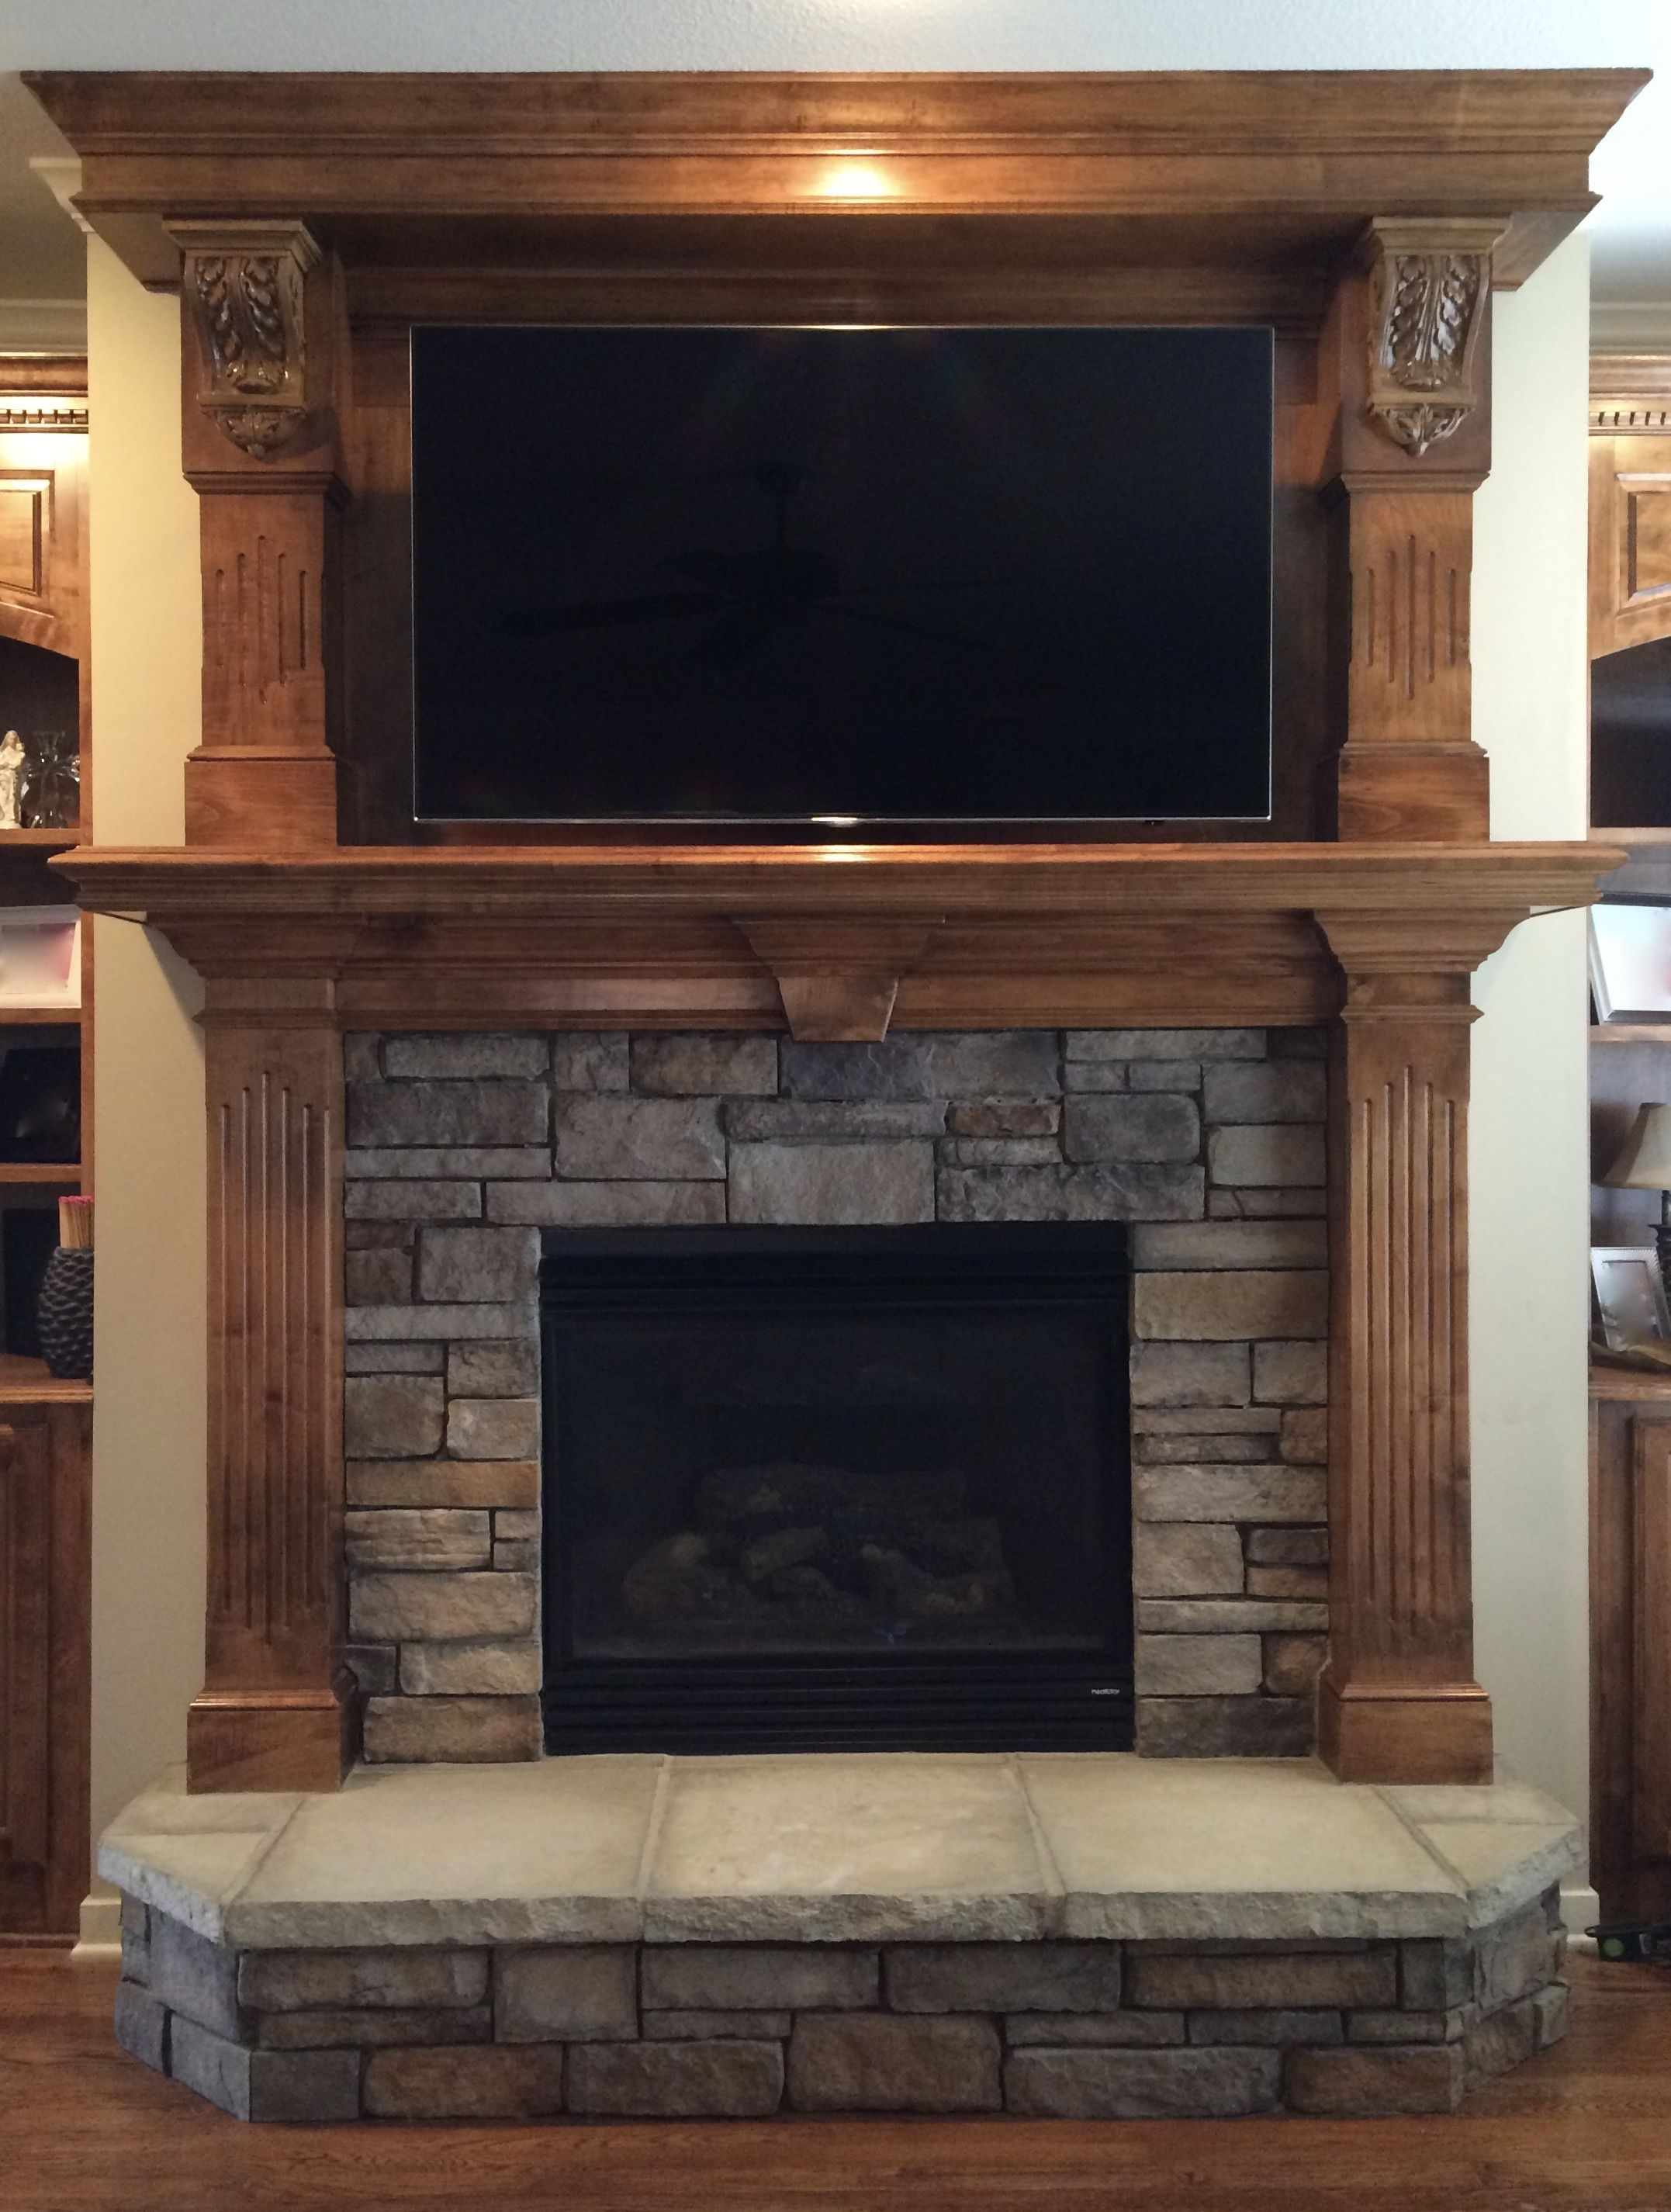 stacked stone replaces tile surround and hearth and tv with adjustable bracket mounted above. Black Bedroom Furniture Sets. Home Design Ideas